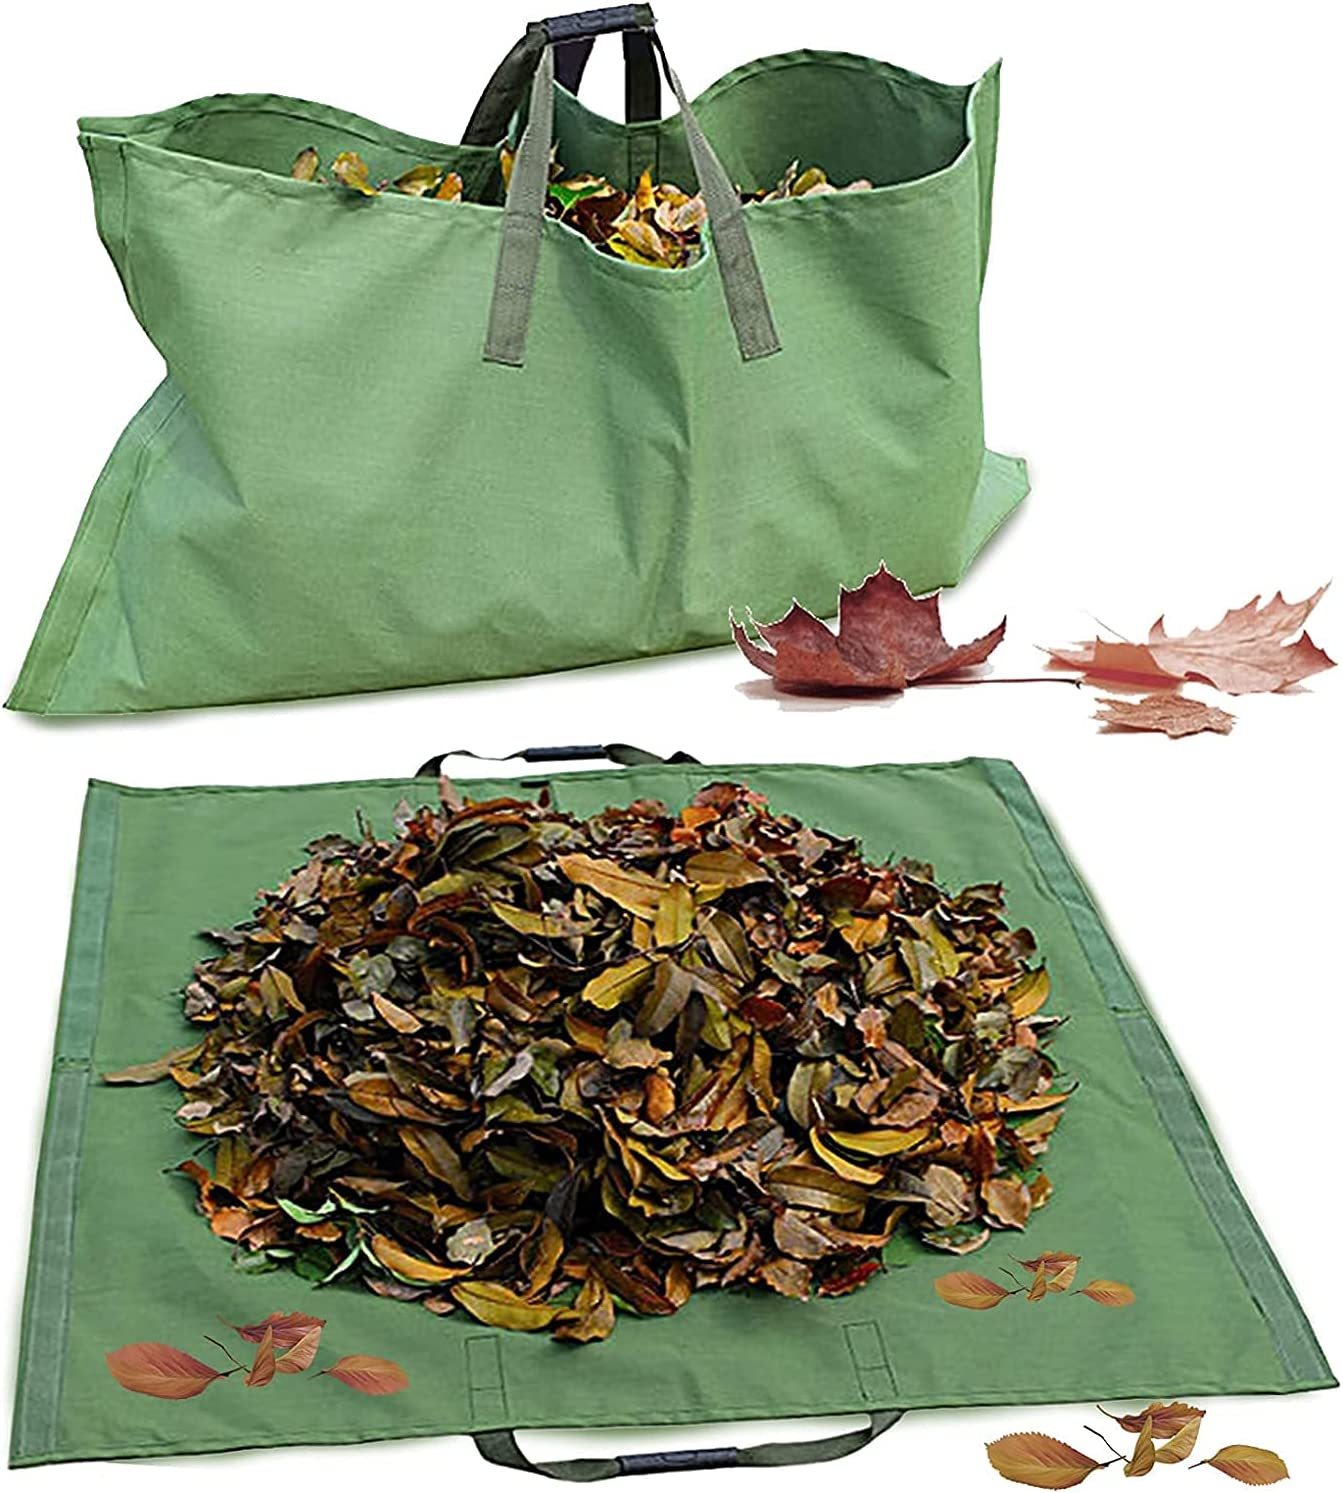 Leaf Bag Branded goods 2 IN 1 Reusable Water Garden Lawn Award-winning store Container Yard Waste